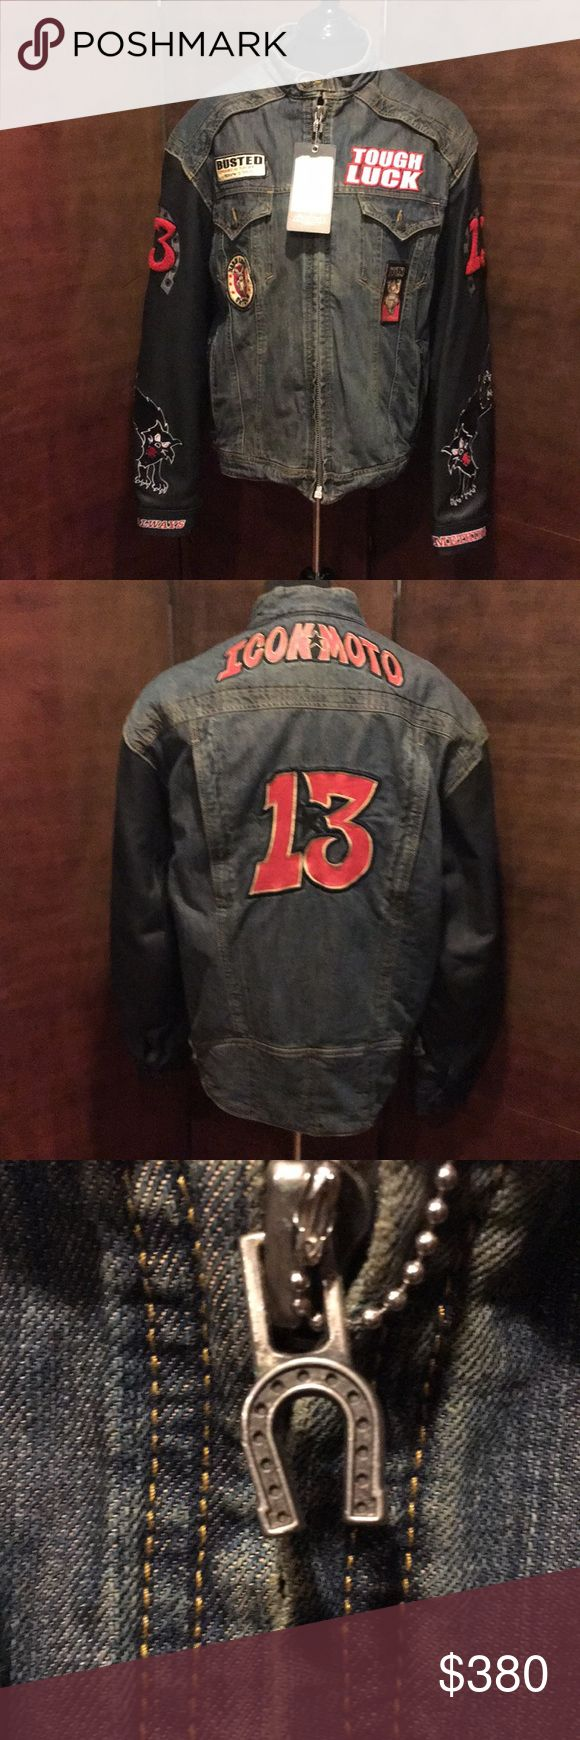 NWT StrongArm Jacket Icon Lucky 13 Limited Edition NWT Strong Arm Jacket Icon Lucky 13 Limited Edition.  Motorcycle Jacket. Patches on front, back and arms. Arms say Always Something. Inside has a best liner that is removable. Quality 14 oz. Denim Chassis, Durable 1.2mm - 1.4mm Leather sleeves, CE approved elbow and shoulder armor, zipper intake and exhaust vents control climate and aramid reinforced shoulders for abrasion resistance. There is a small stain on the right arm on the cat…